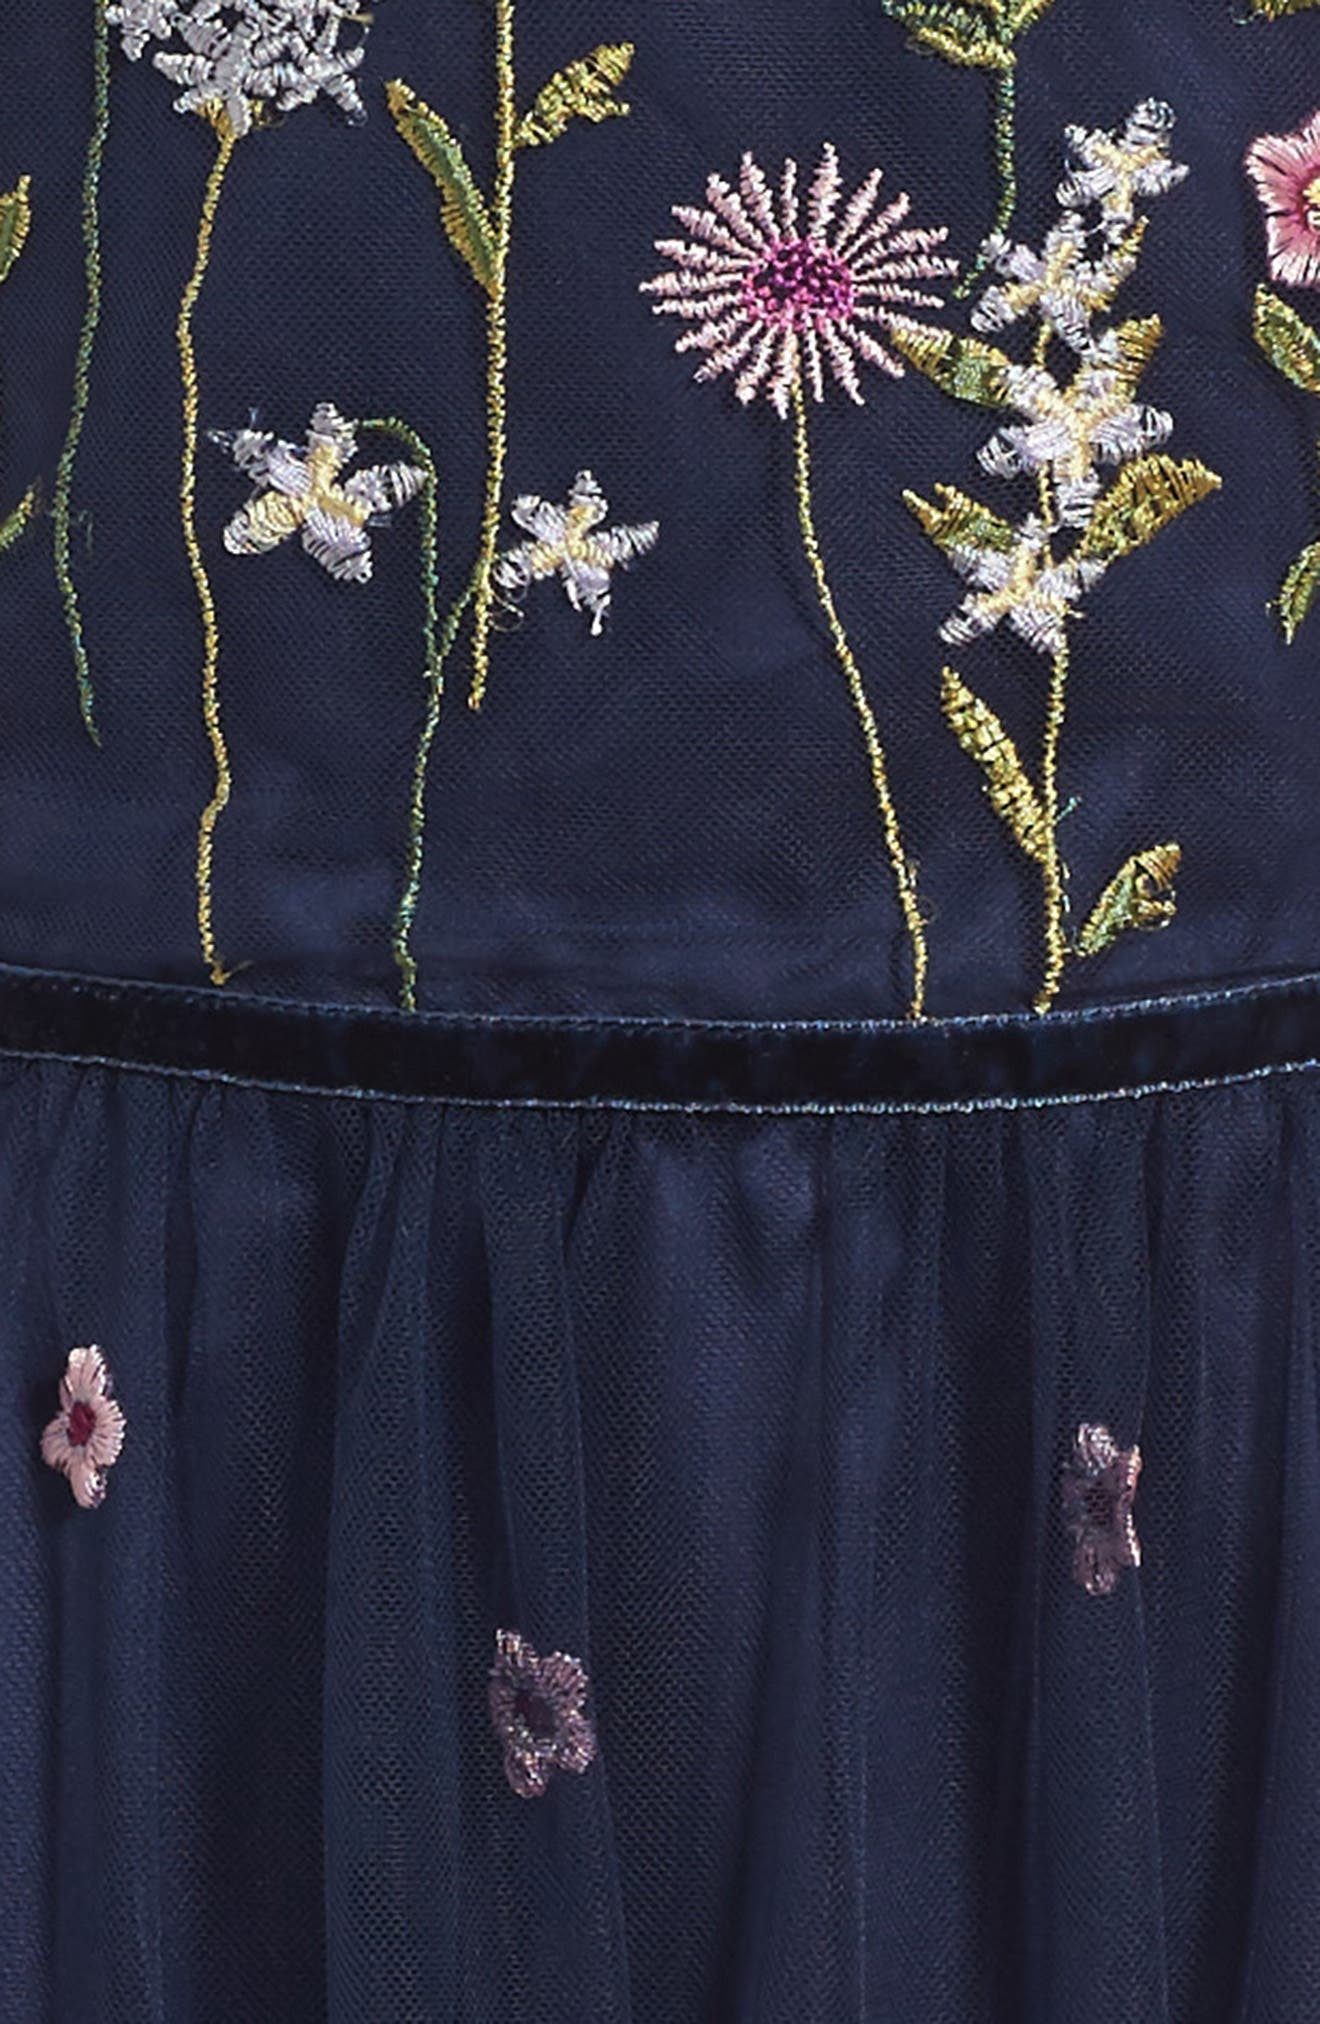 Meadow Embroidered Dress,                             Alternate thumbnail 3, color,                             401